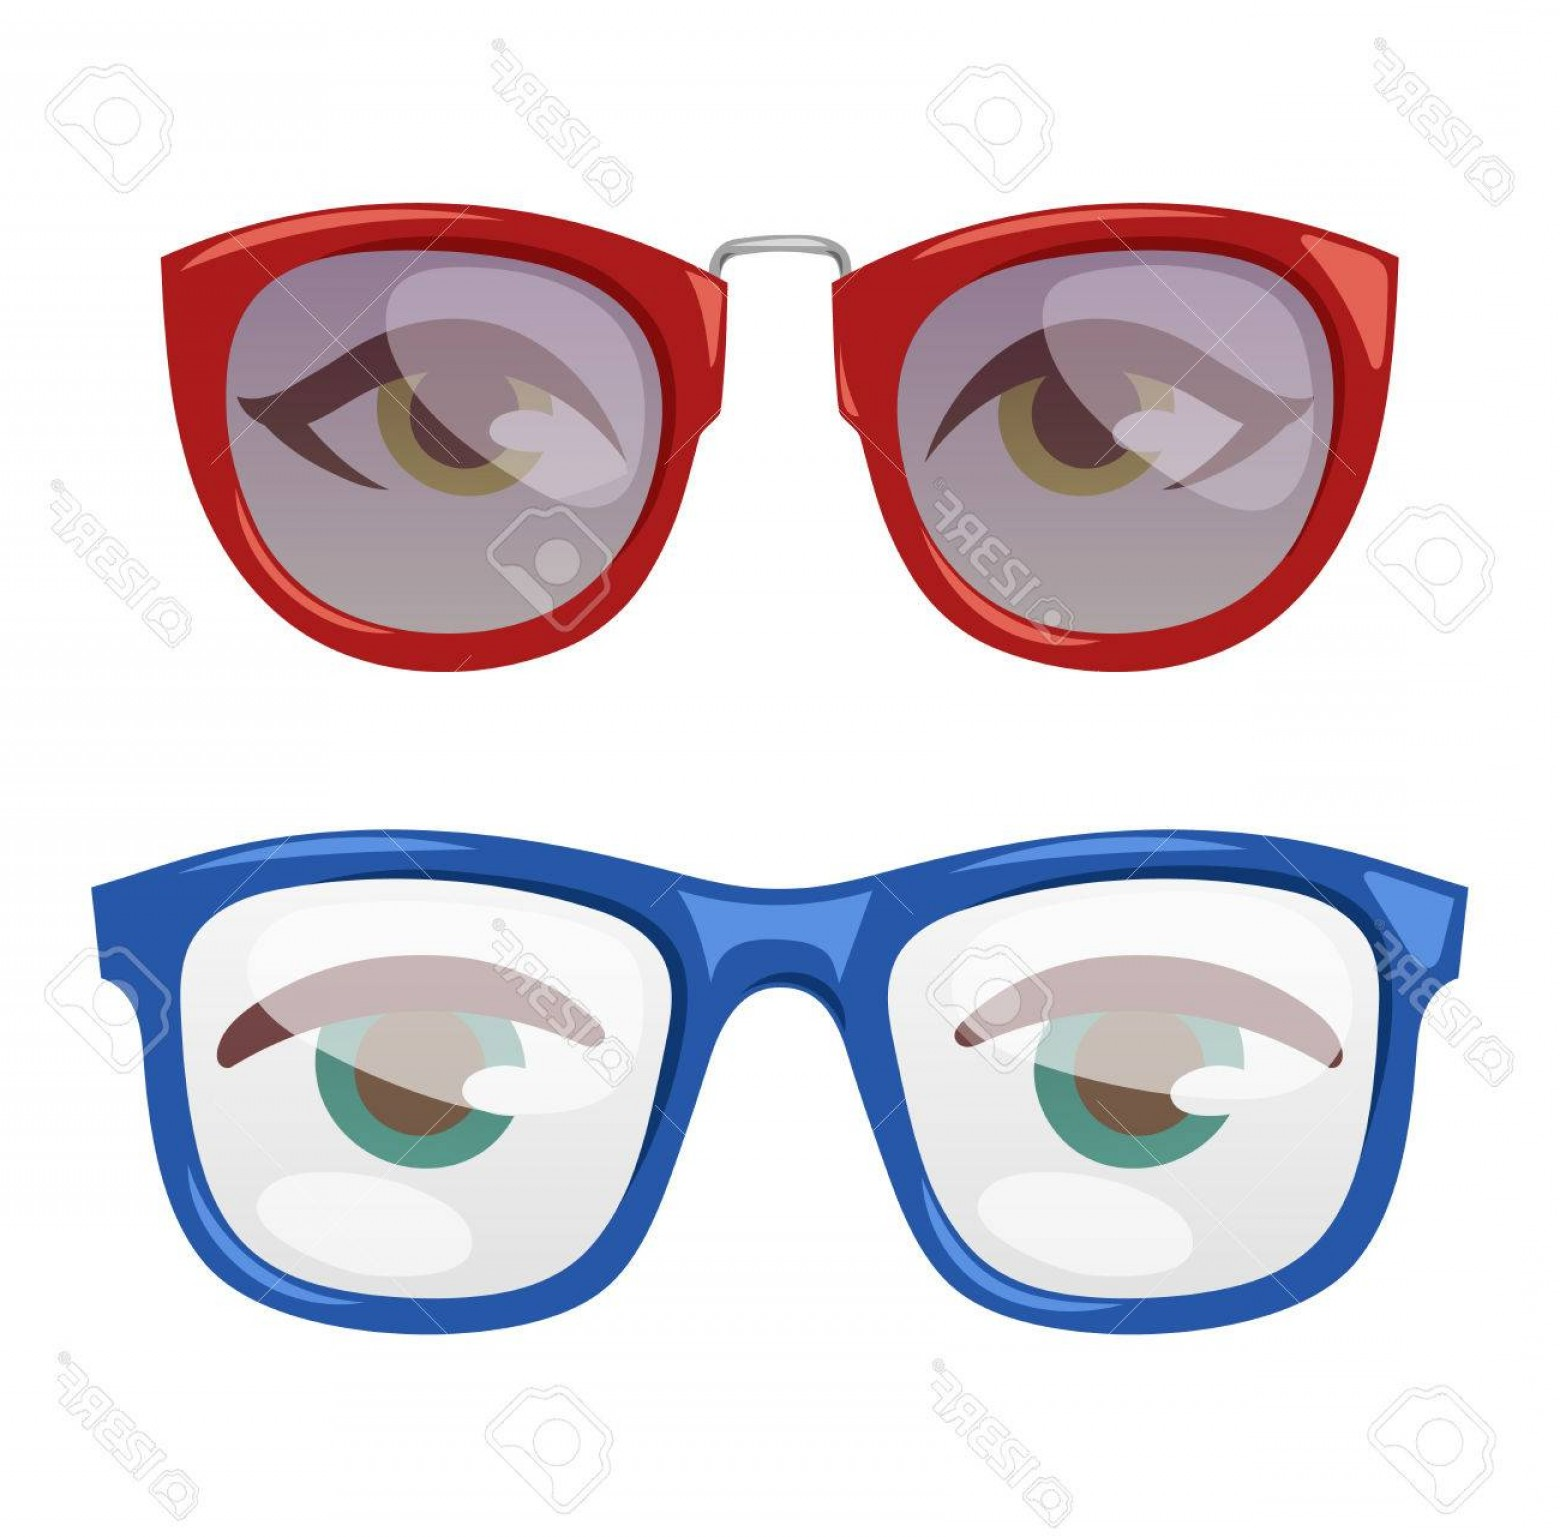 Reading Glasses For Men Vector: Photostock Vector Reading Glasses Human Eye Eyesight Equipment Glasses Human Eye Silhouette Beauty Eyeball People Acce